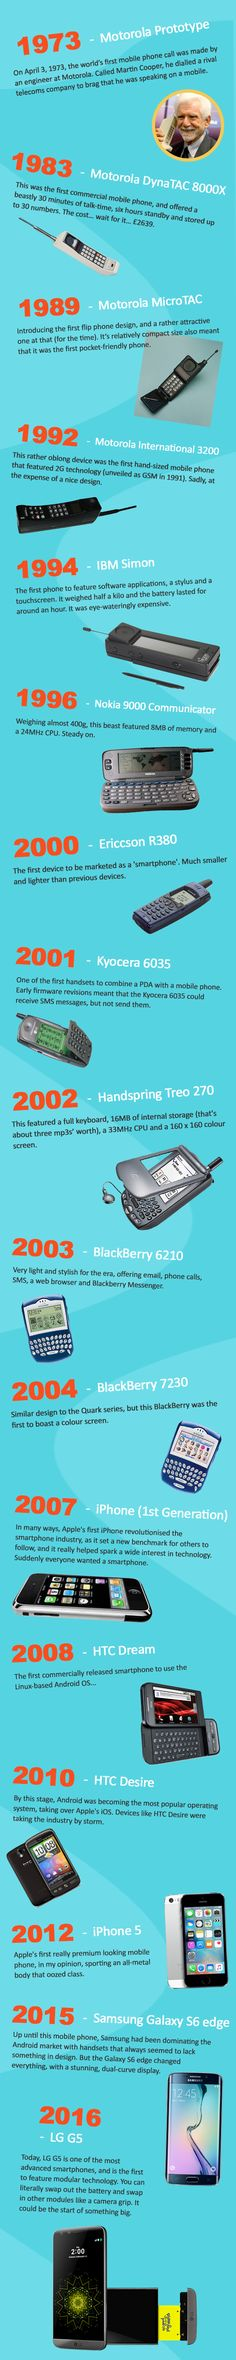 #Infographic - From 1973, all the way up to today.  In the 40+ years since the dawn of the 1970s, the technology industry has evolved from a relatively misunderstood and geeky crowd, to what is perhaps one of today's most dynamic and exciting fields.  And such is the nature of technology,